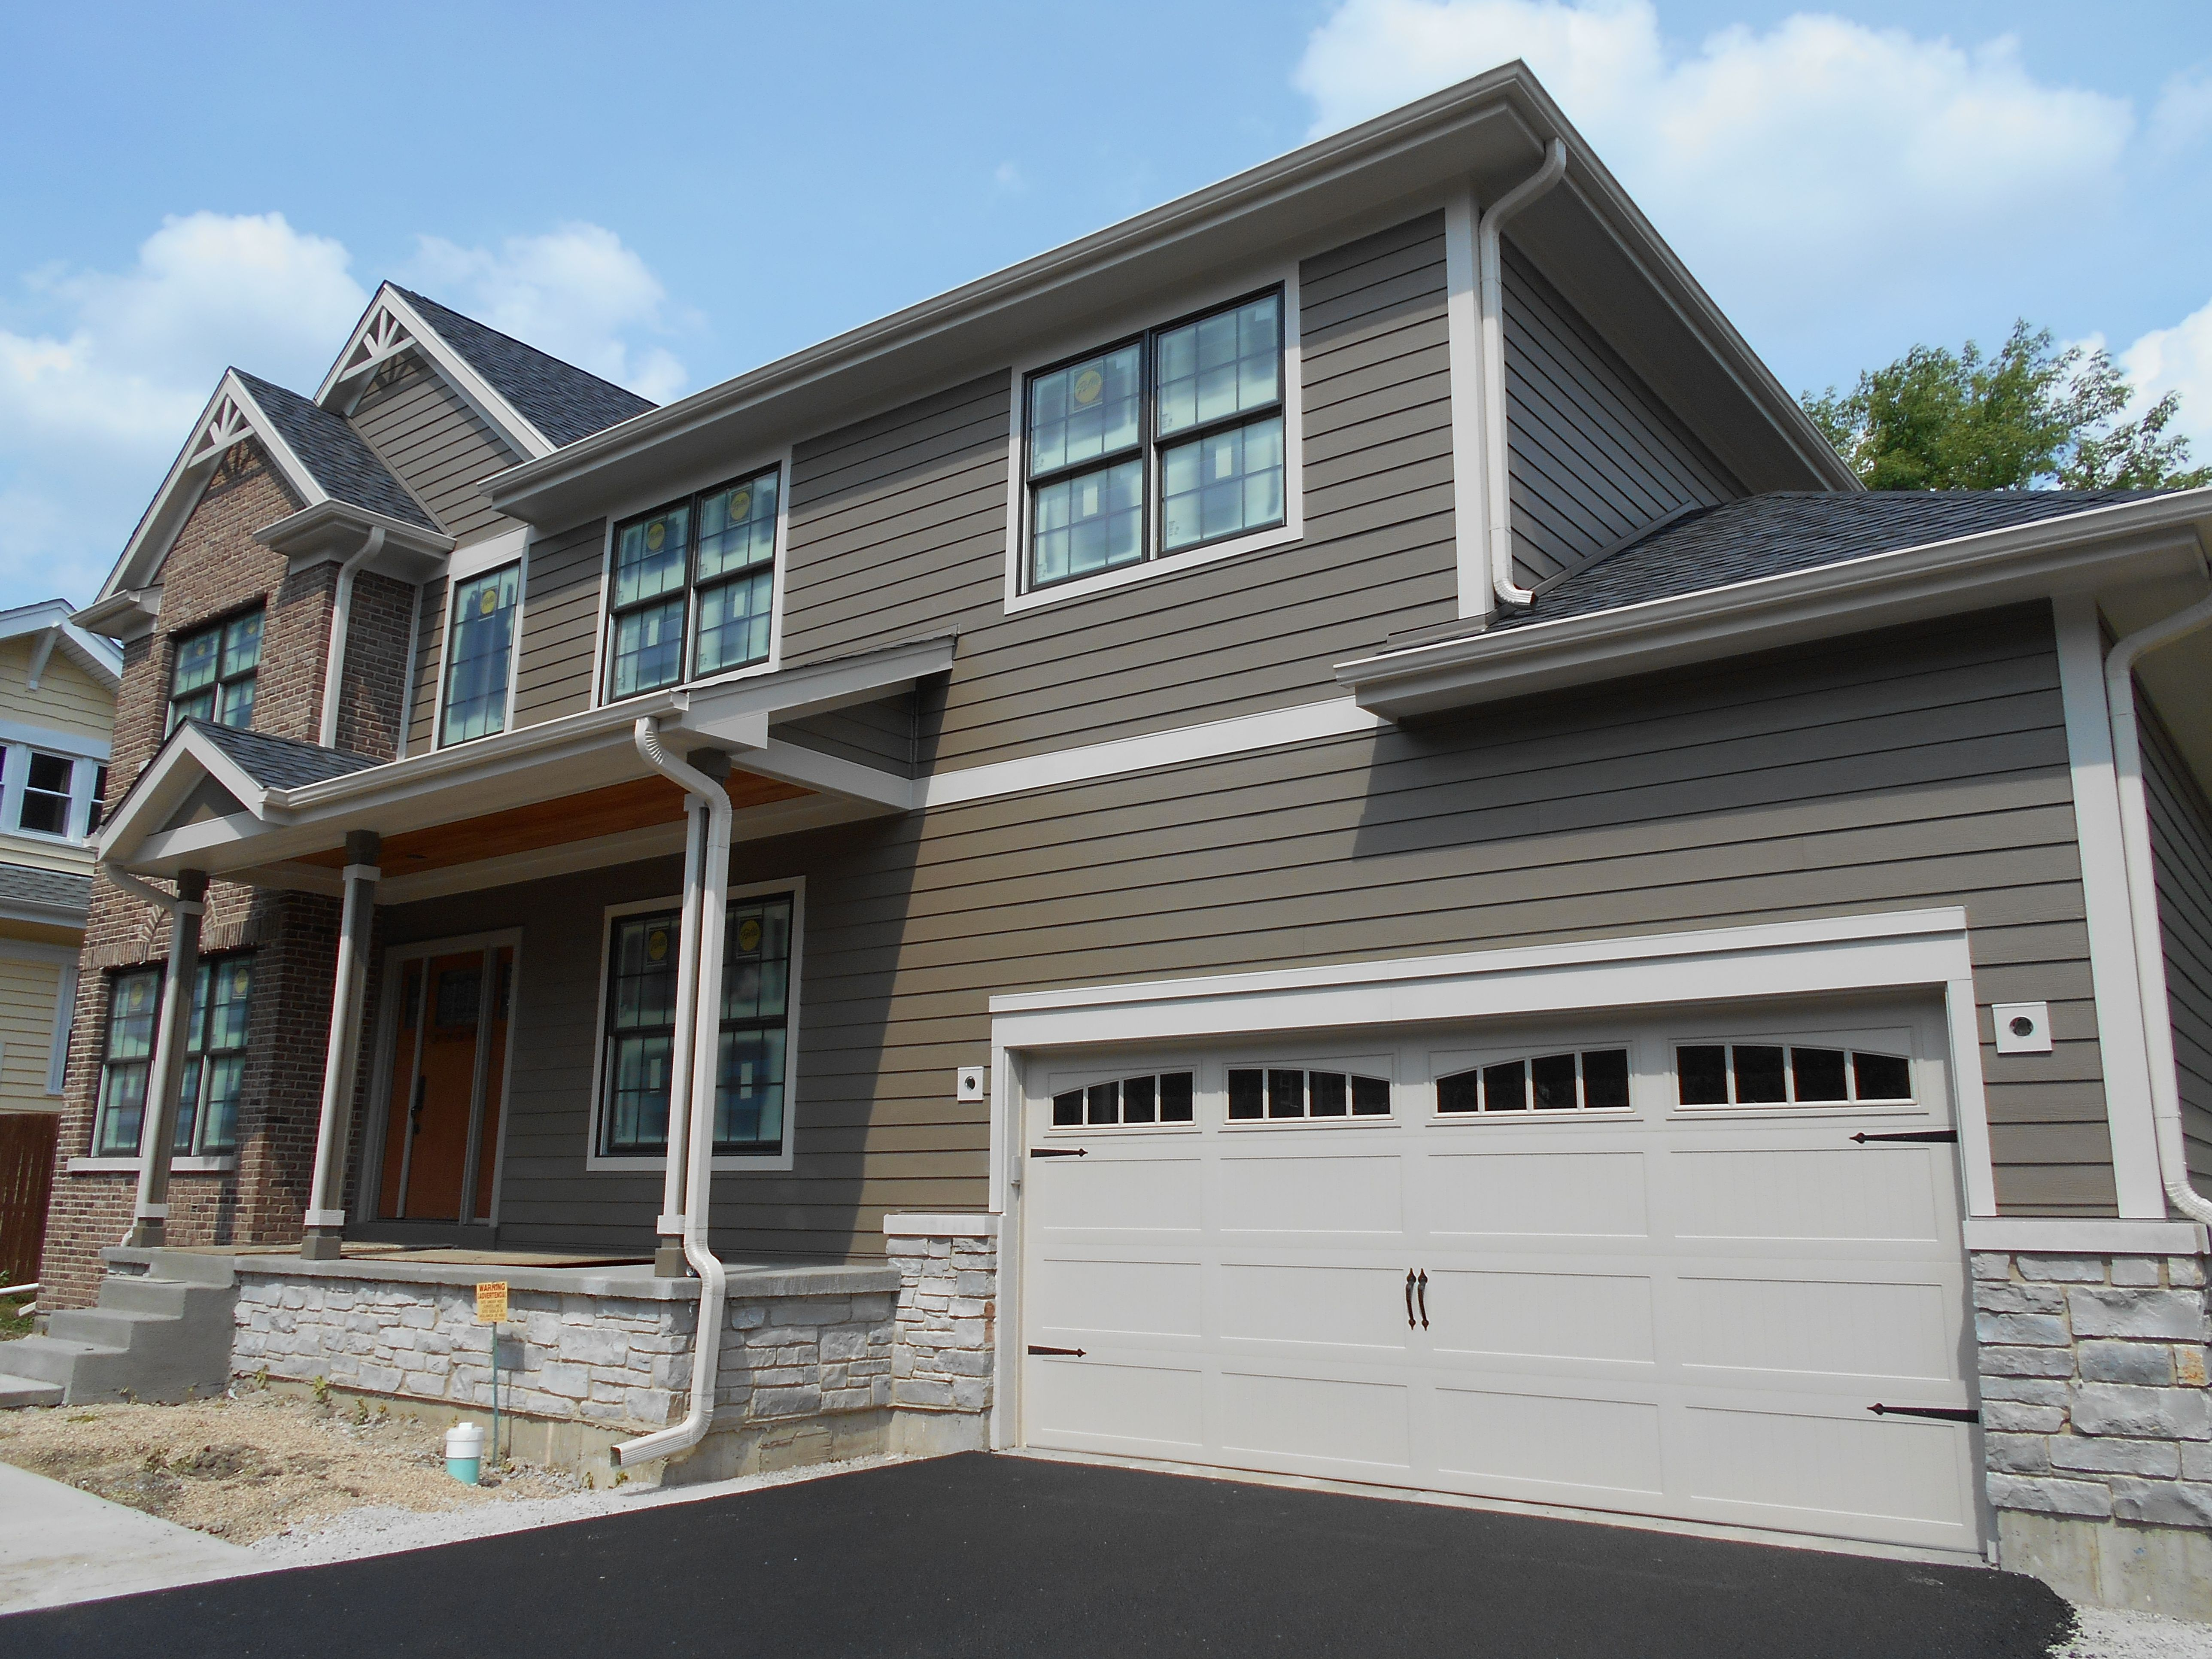 Choosing The Right Color For Your Siding Makes A Statement To Your New Home Home New Homes Exterior Remodel